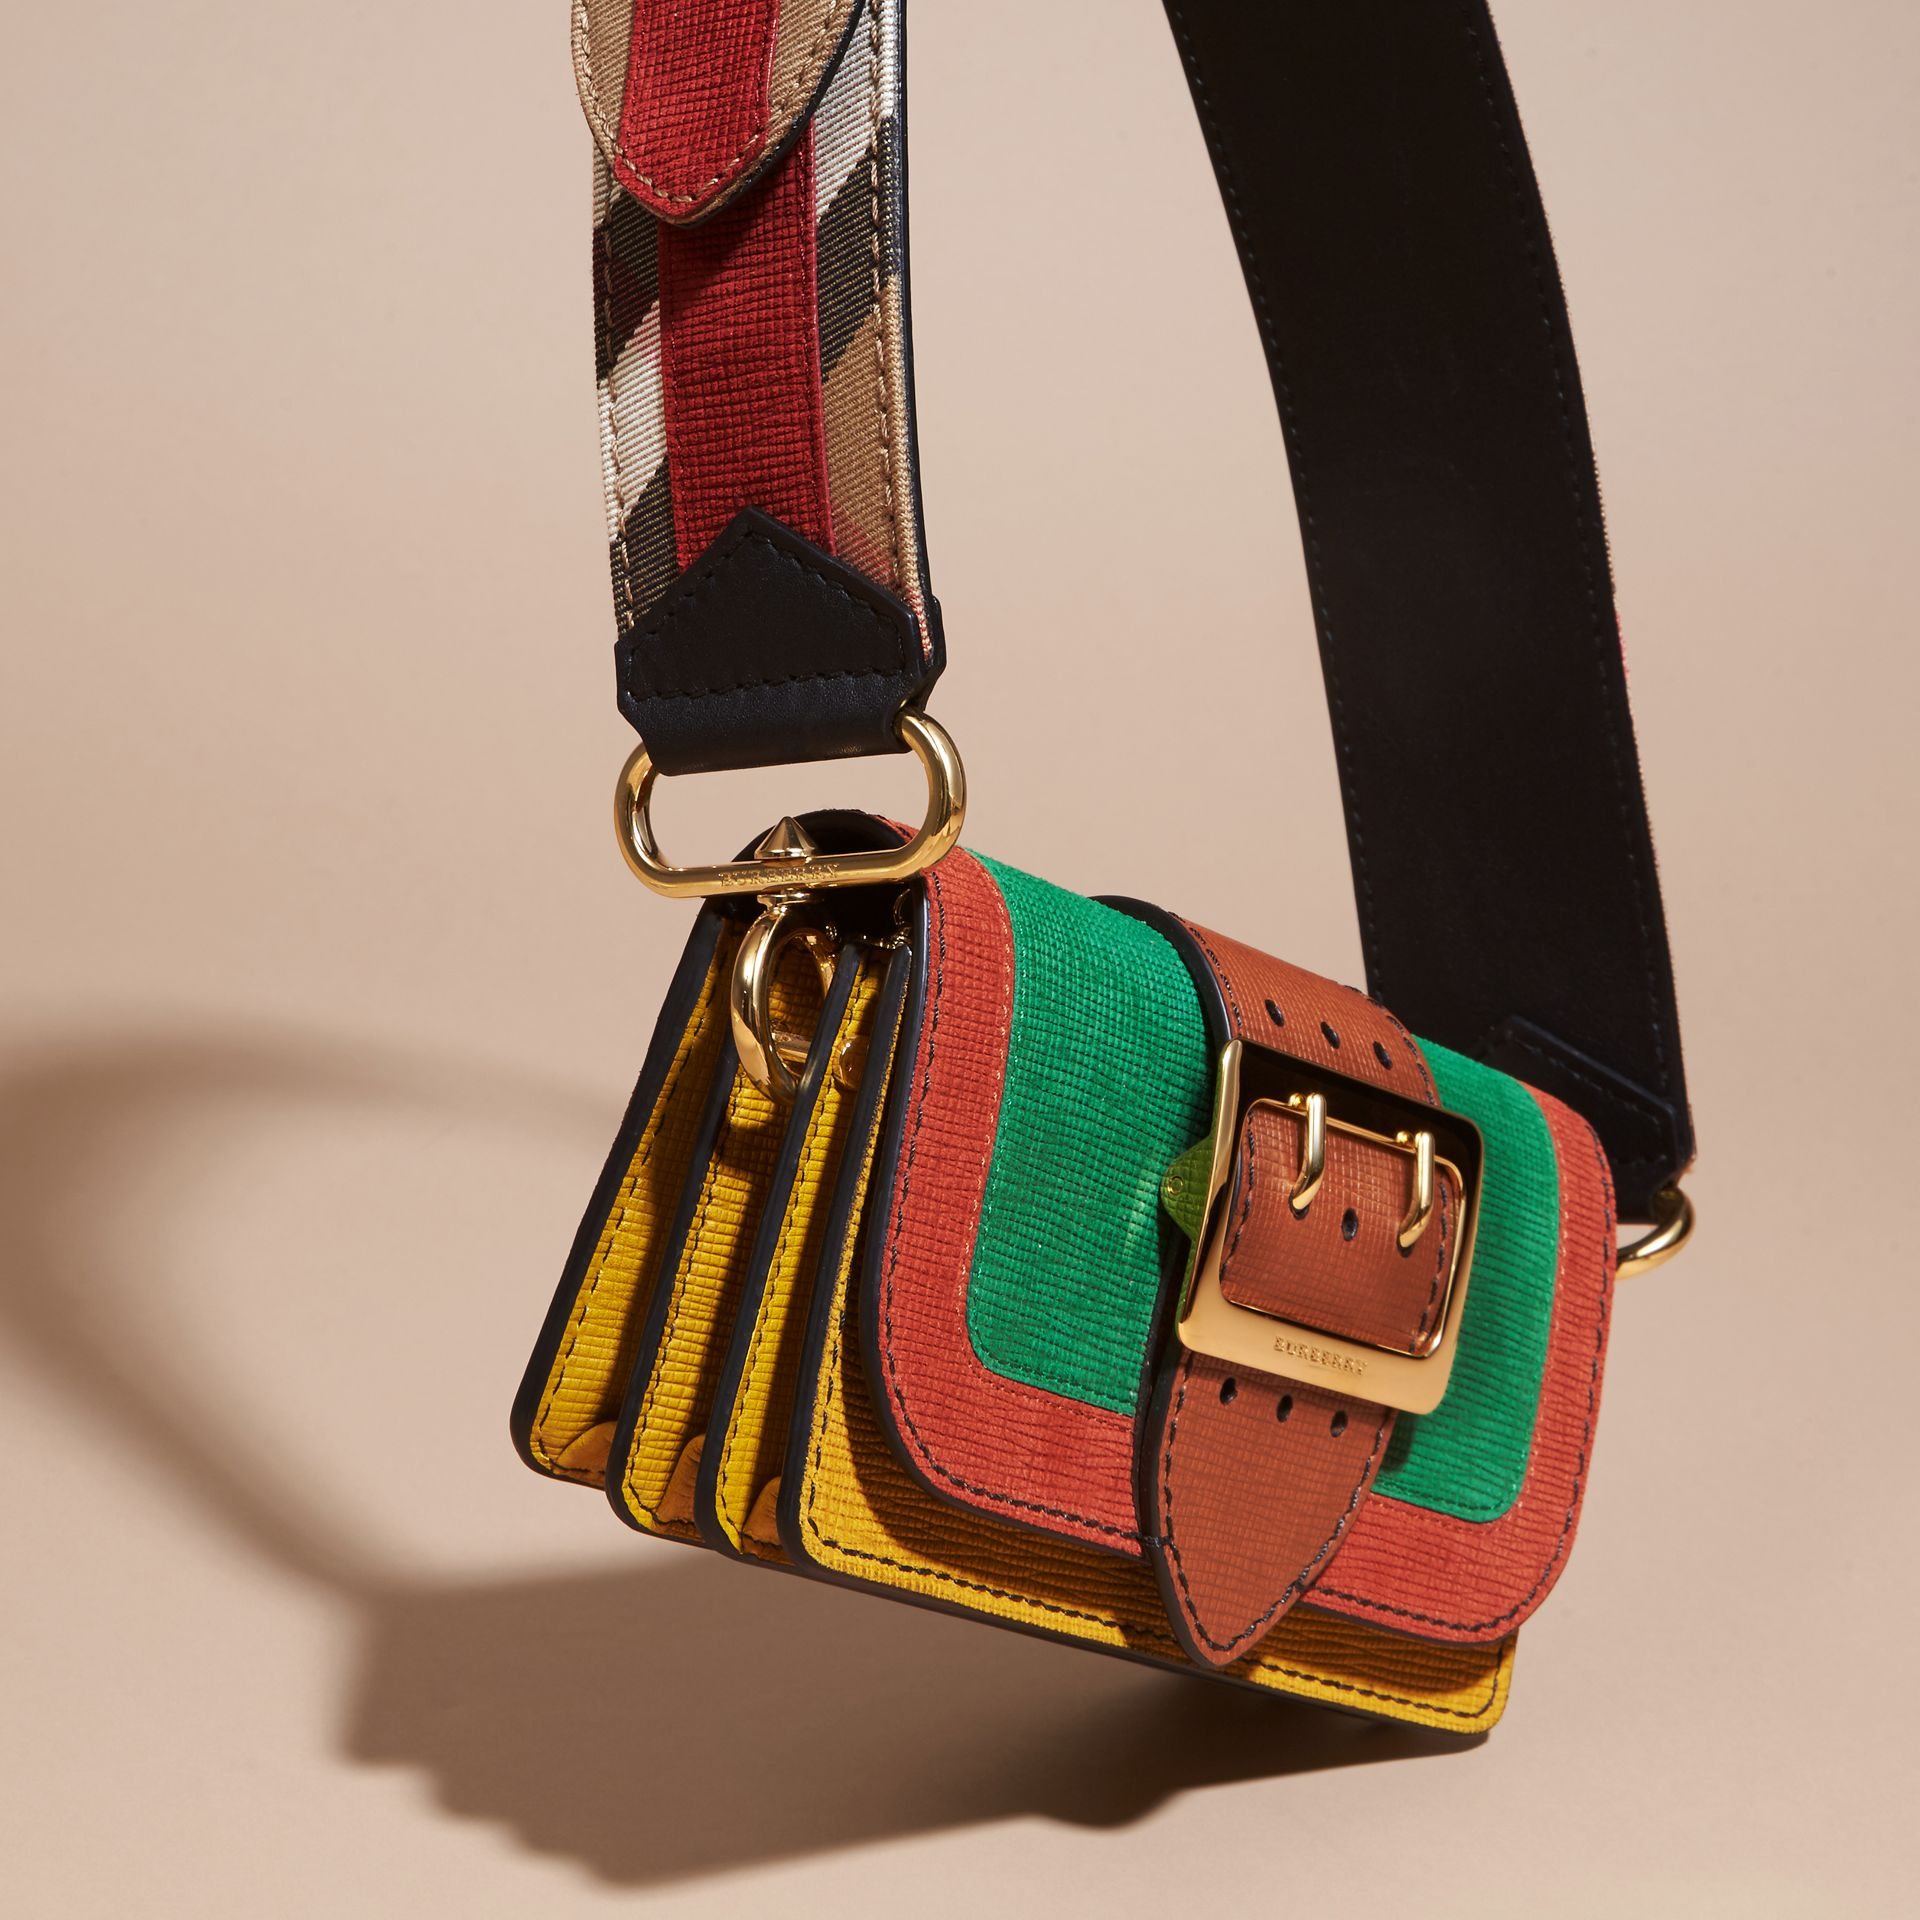 The Small Buckle Bag in Textured Leather in Bright Green - gallery image 8